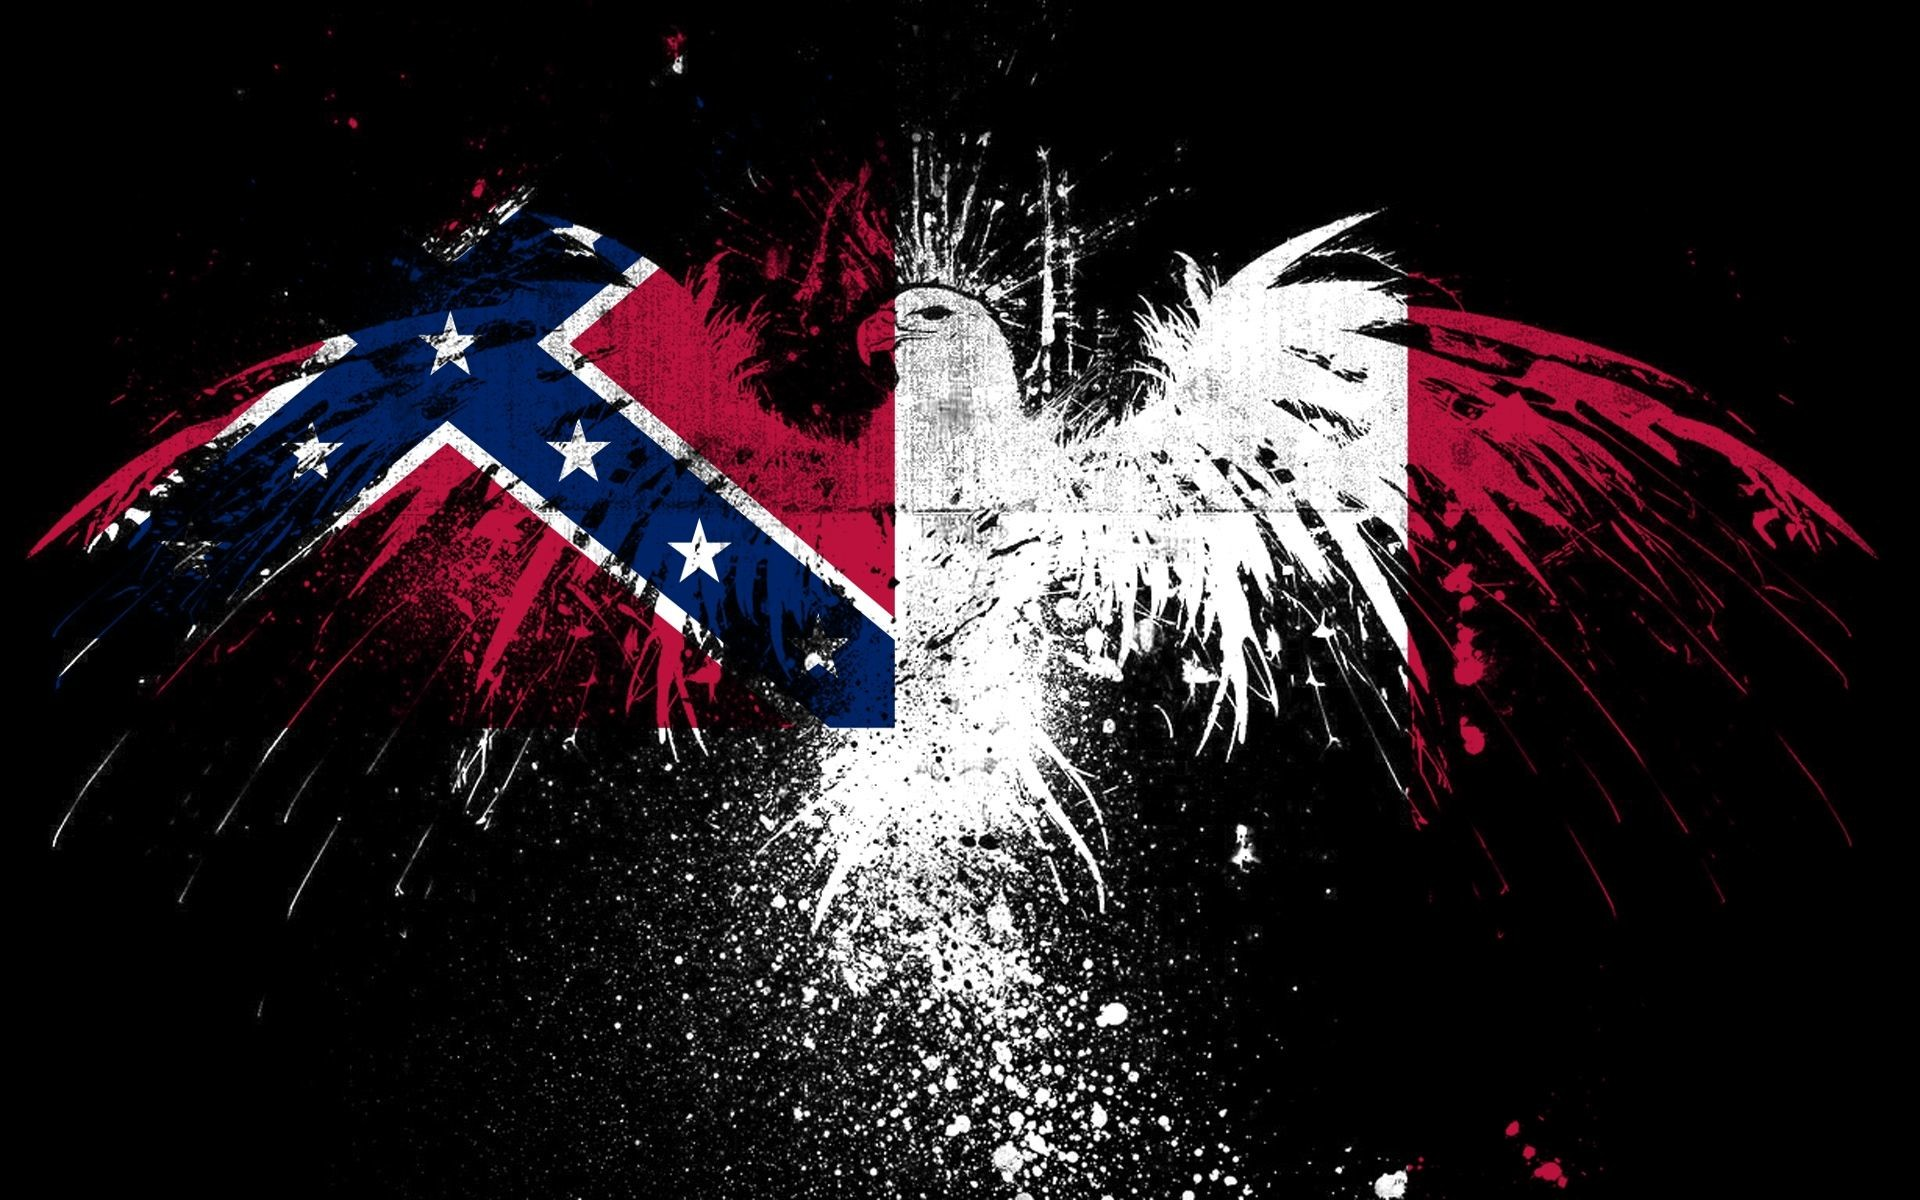 Rebel Flag Wallpaper for Android (76+ images)